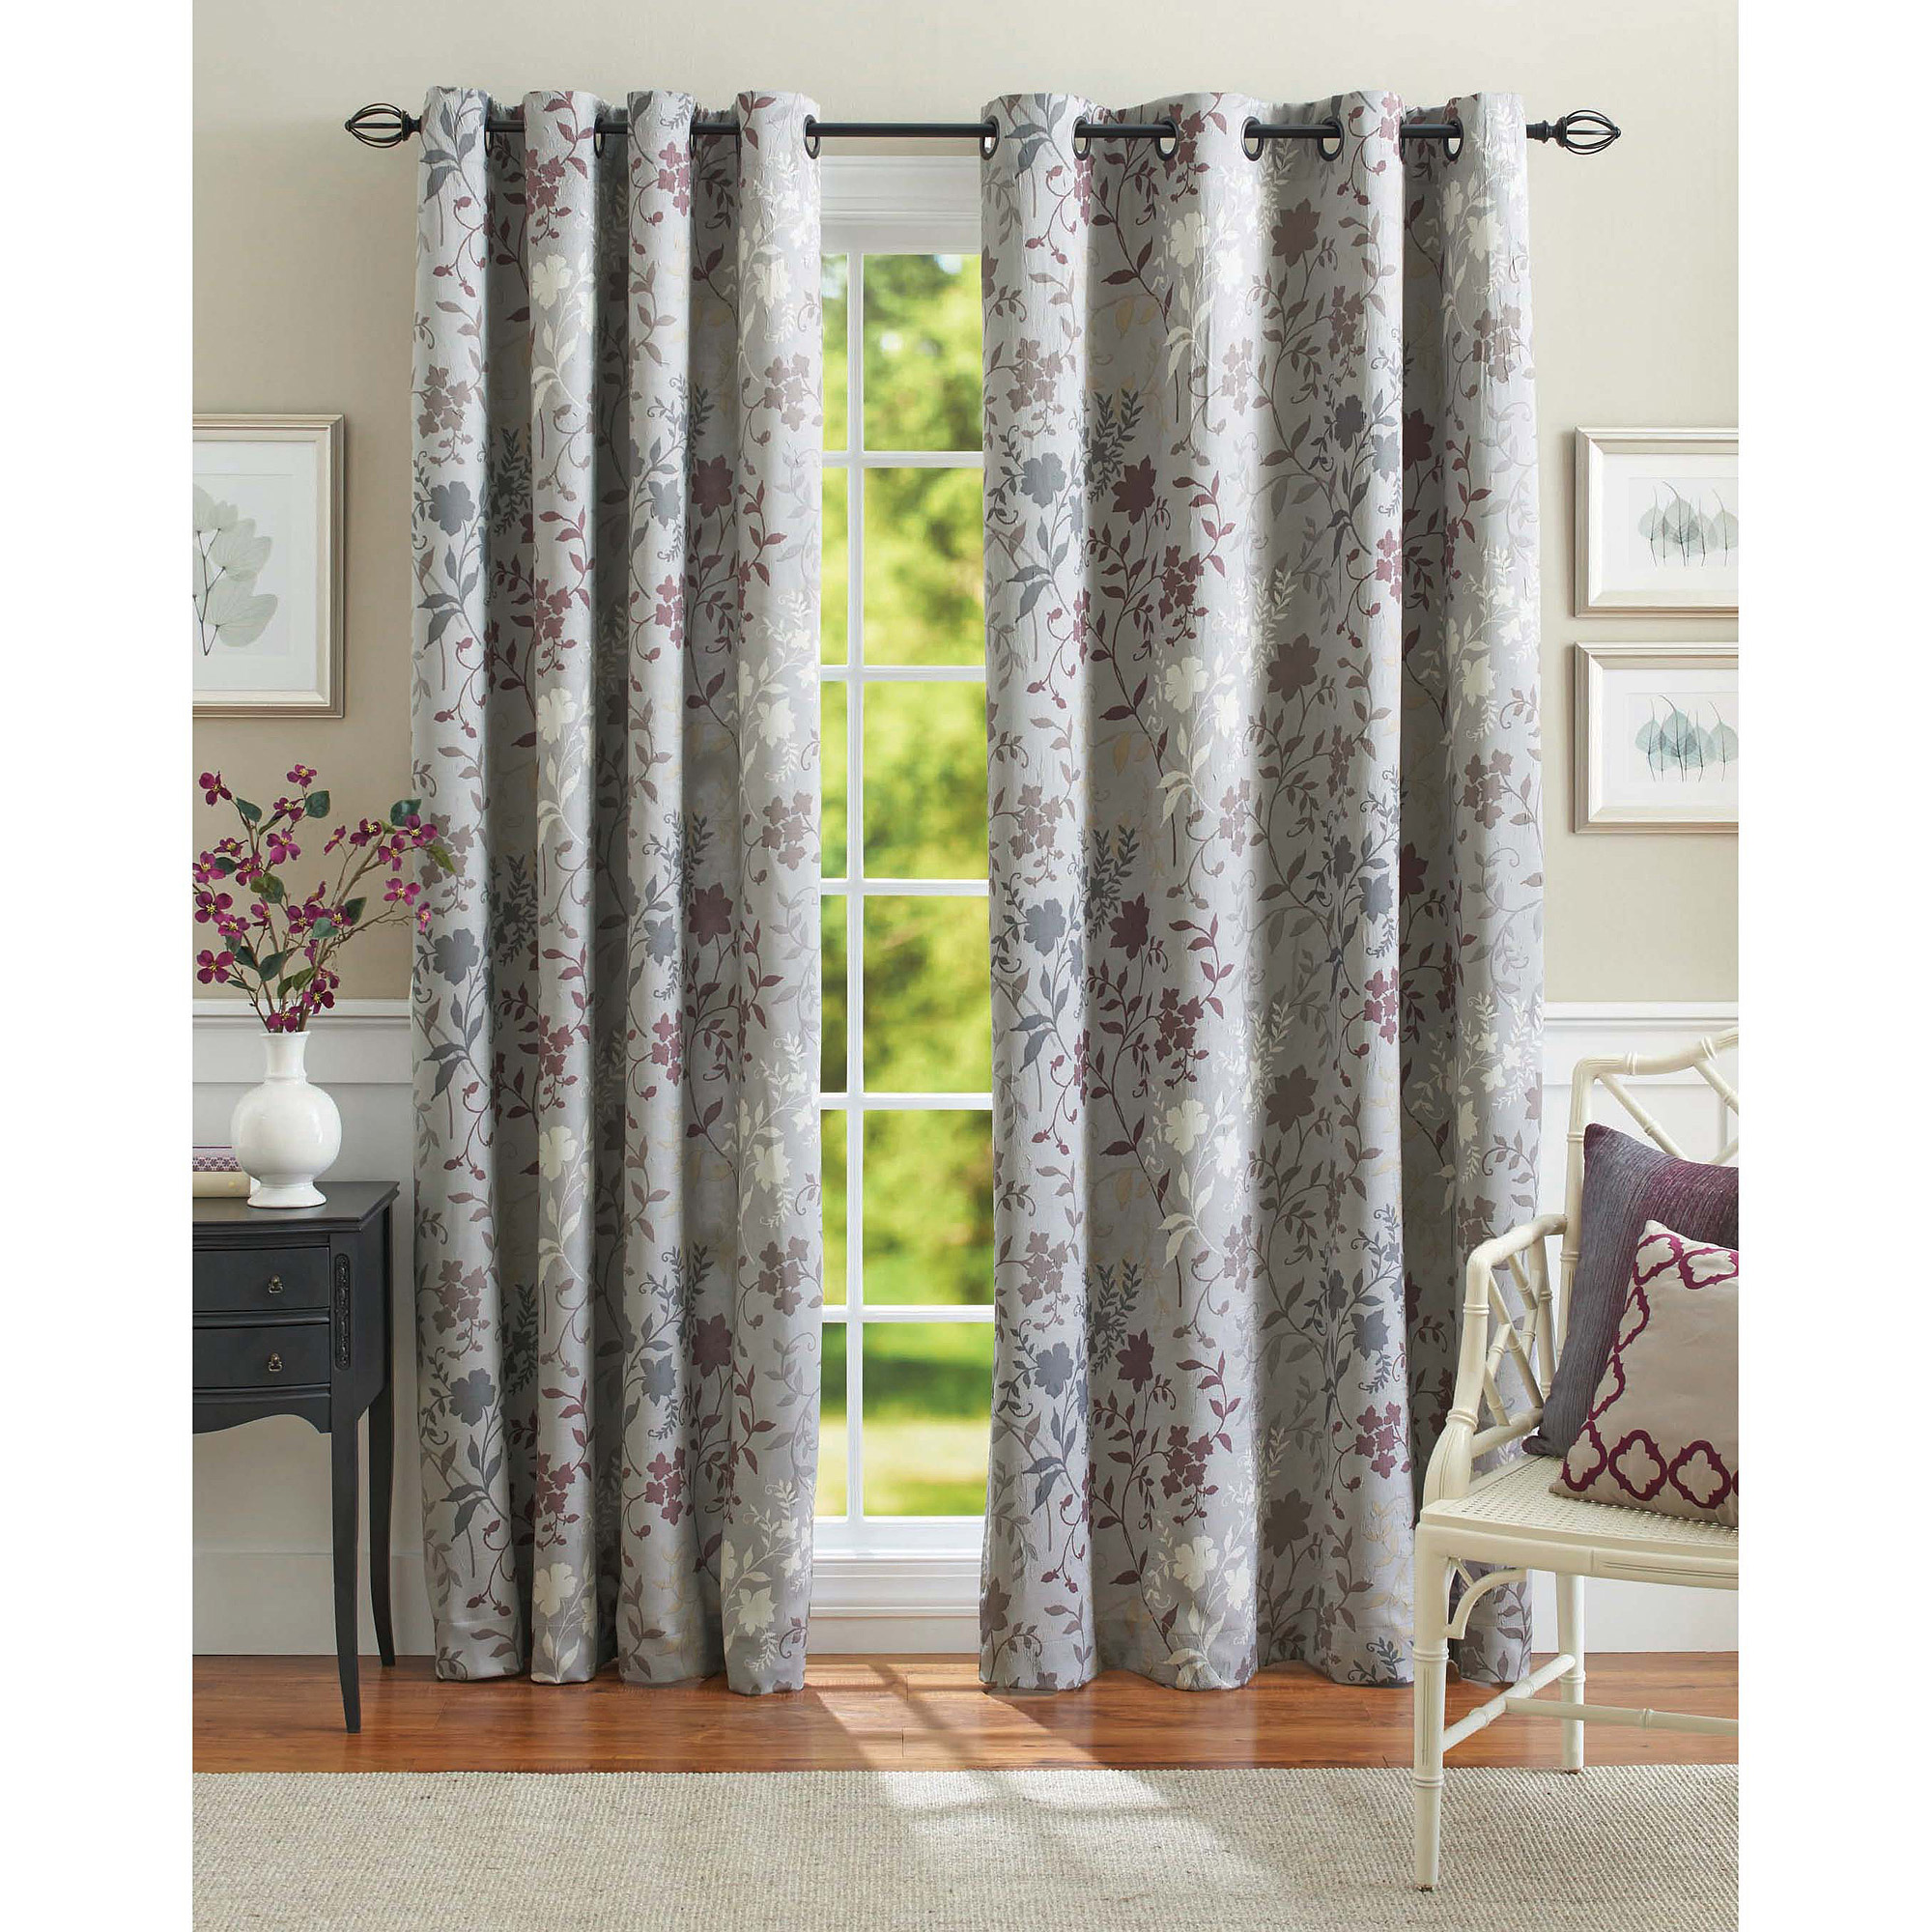 Better Homes and Gardens Calista Print Room Darkening Curtain Panel  Walmartcom